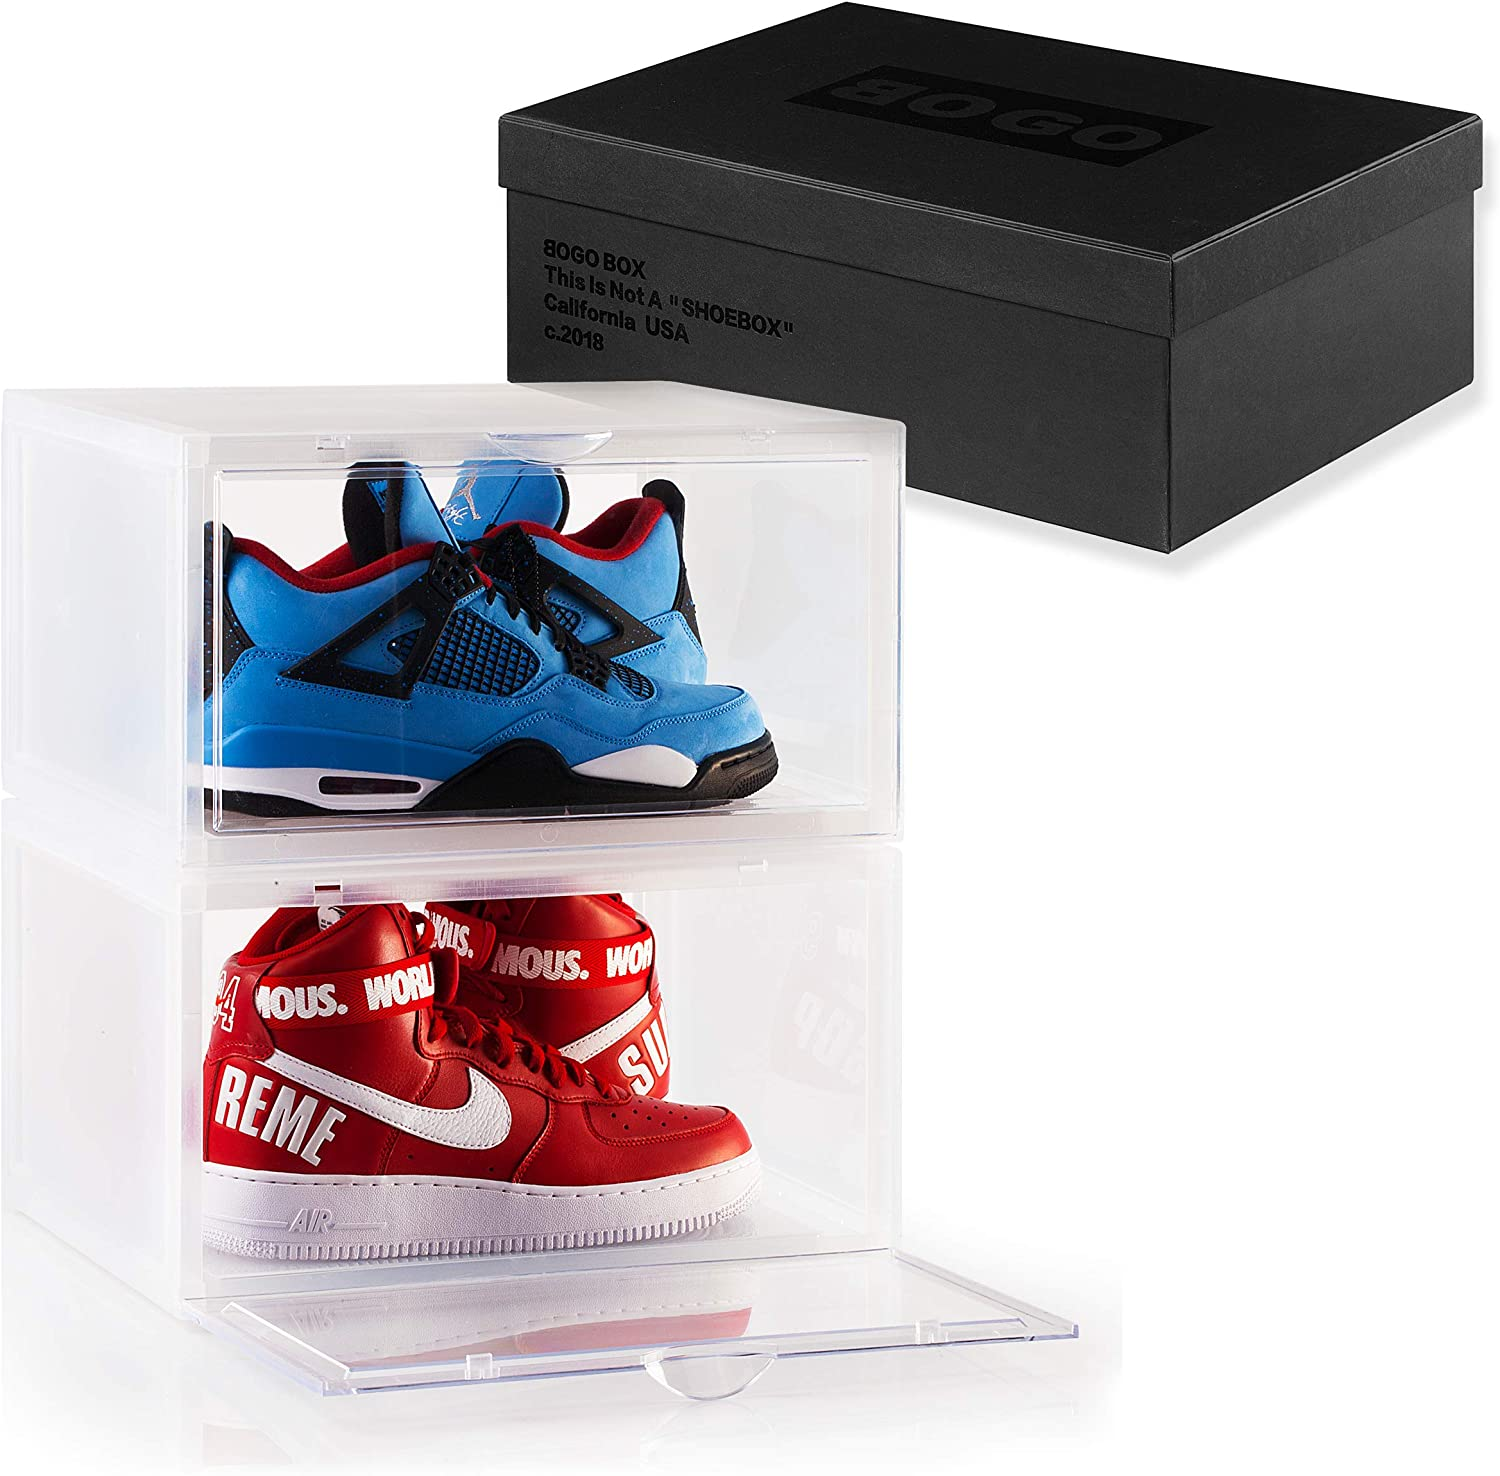 BOGO Free Shipping New BOX Set of 2 Clear Crates Sneaker Storag Plastic Max 43% OFF Shoe Box